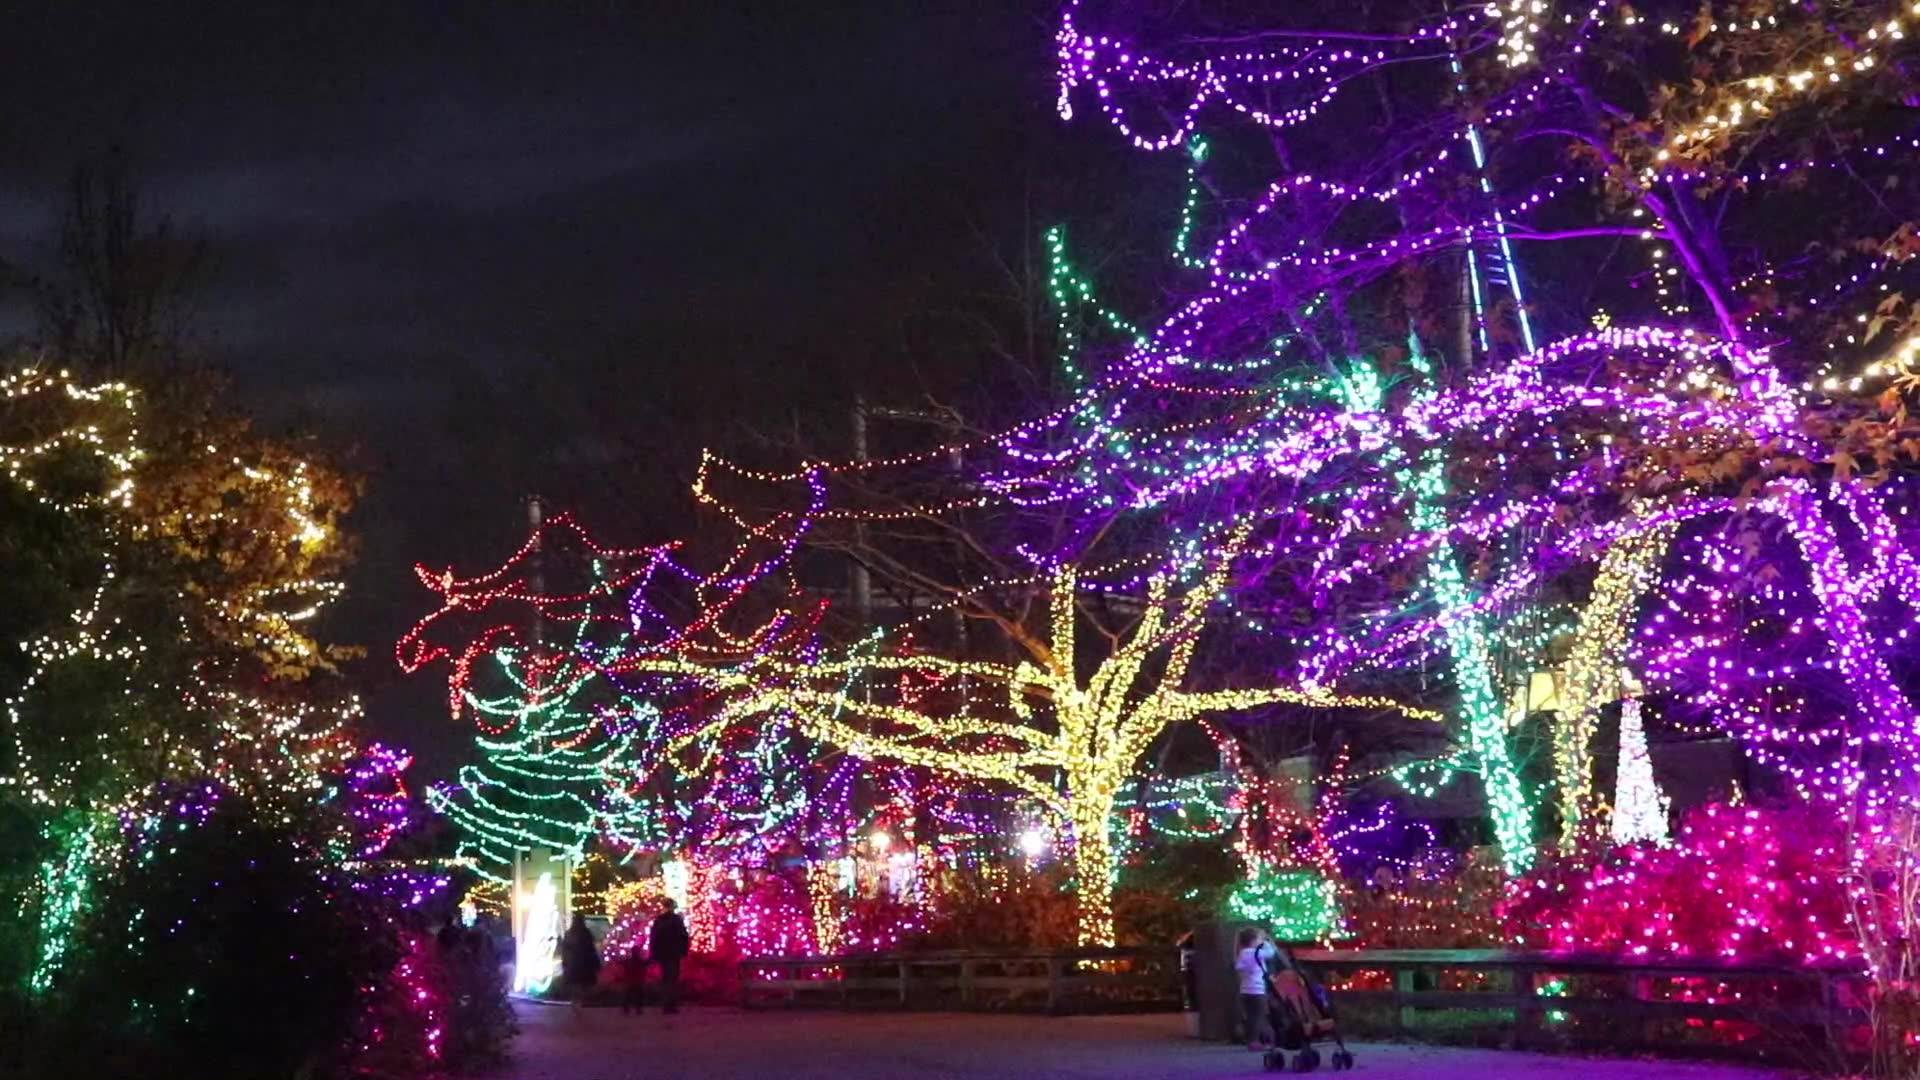 Kokomo Indiana Christmas Lights 2021 Guide To More Than A Dozen Local Light Displays To Brighten Your Holiday Season Wttv Cbs4indy